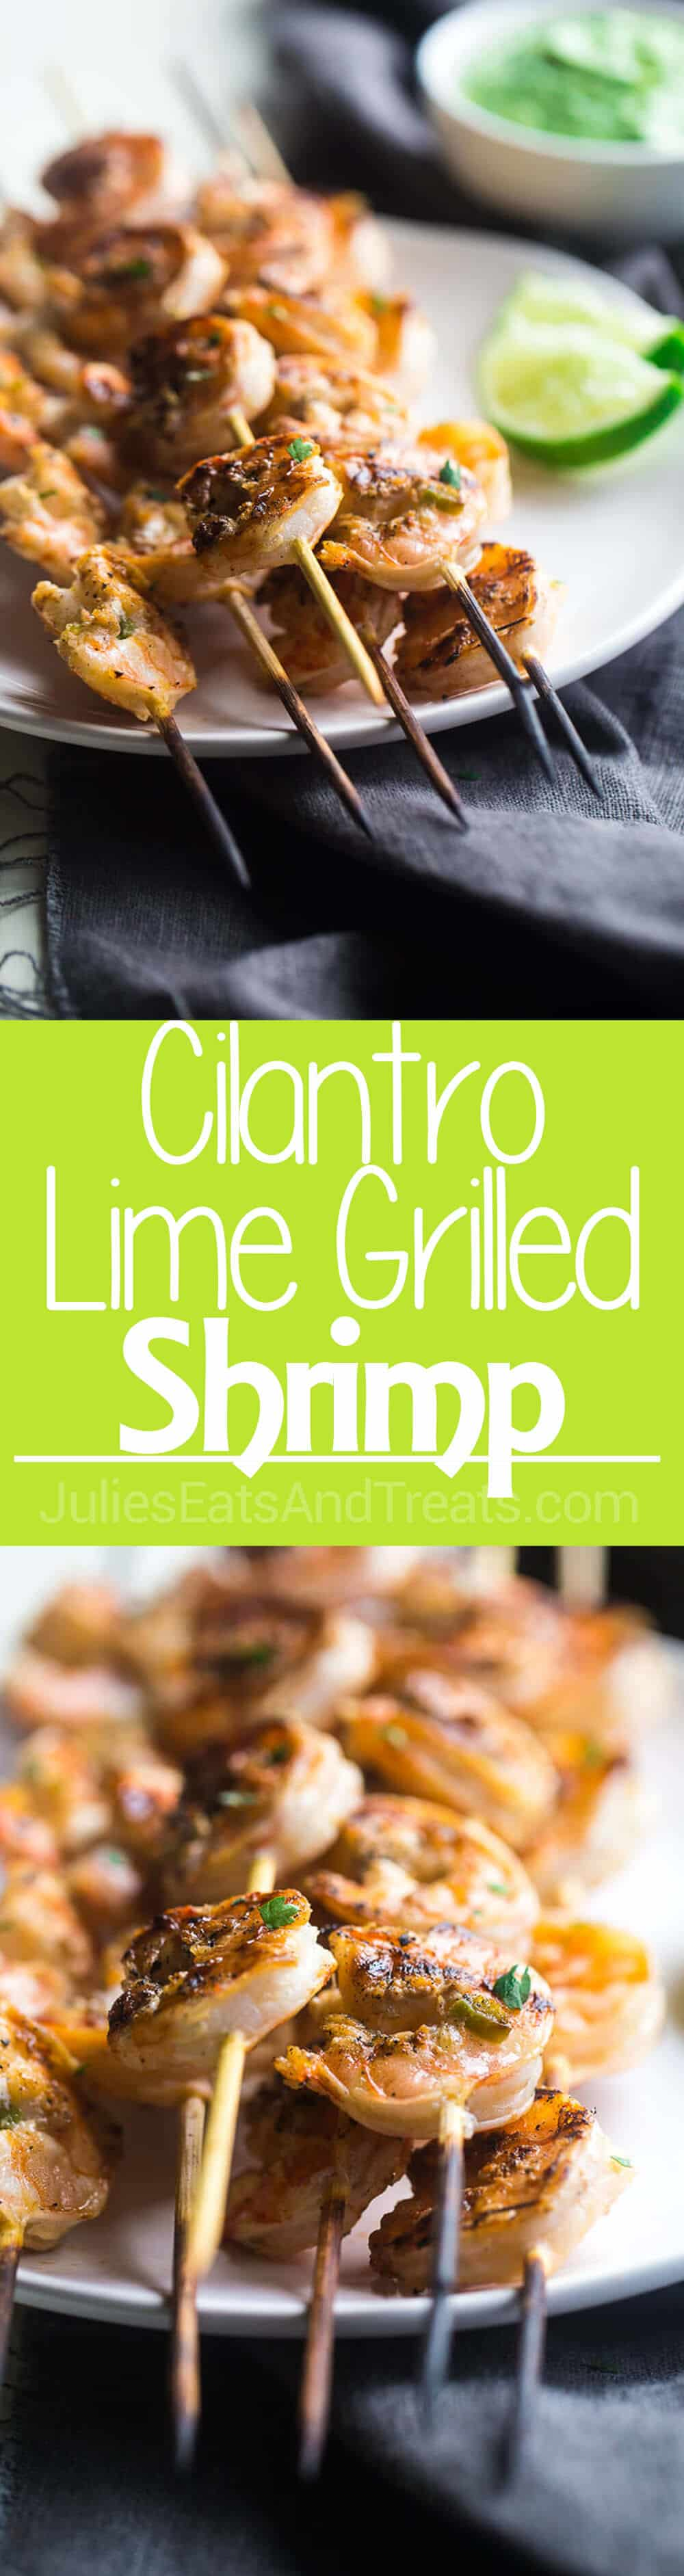 Cilantro Lime Grilled Shrimp with Avocado Cilantro Dip - Grilled shrimp are marinated in lime juice, honey and jalapeno pepper, then grilled for a quick and easy, healthy appetizer that's perfect for Summer!